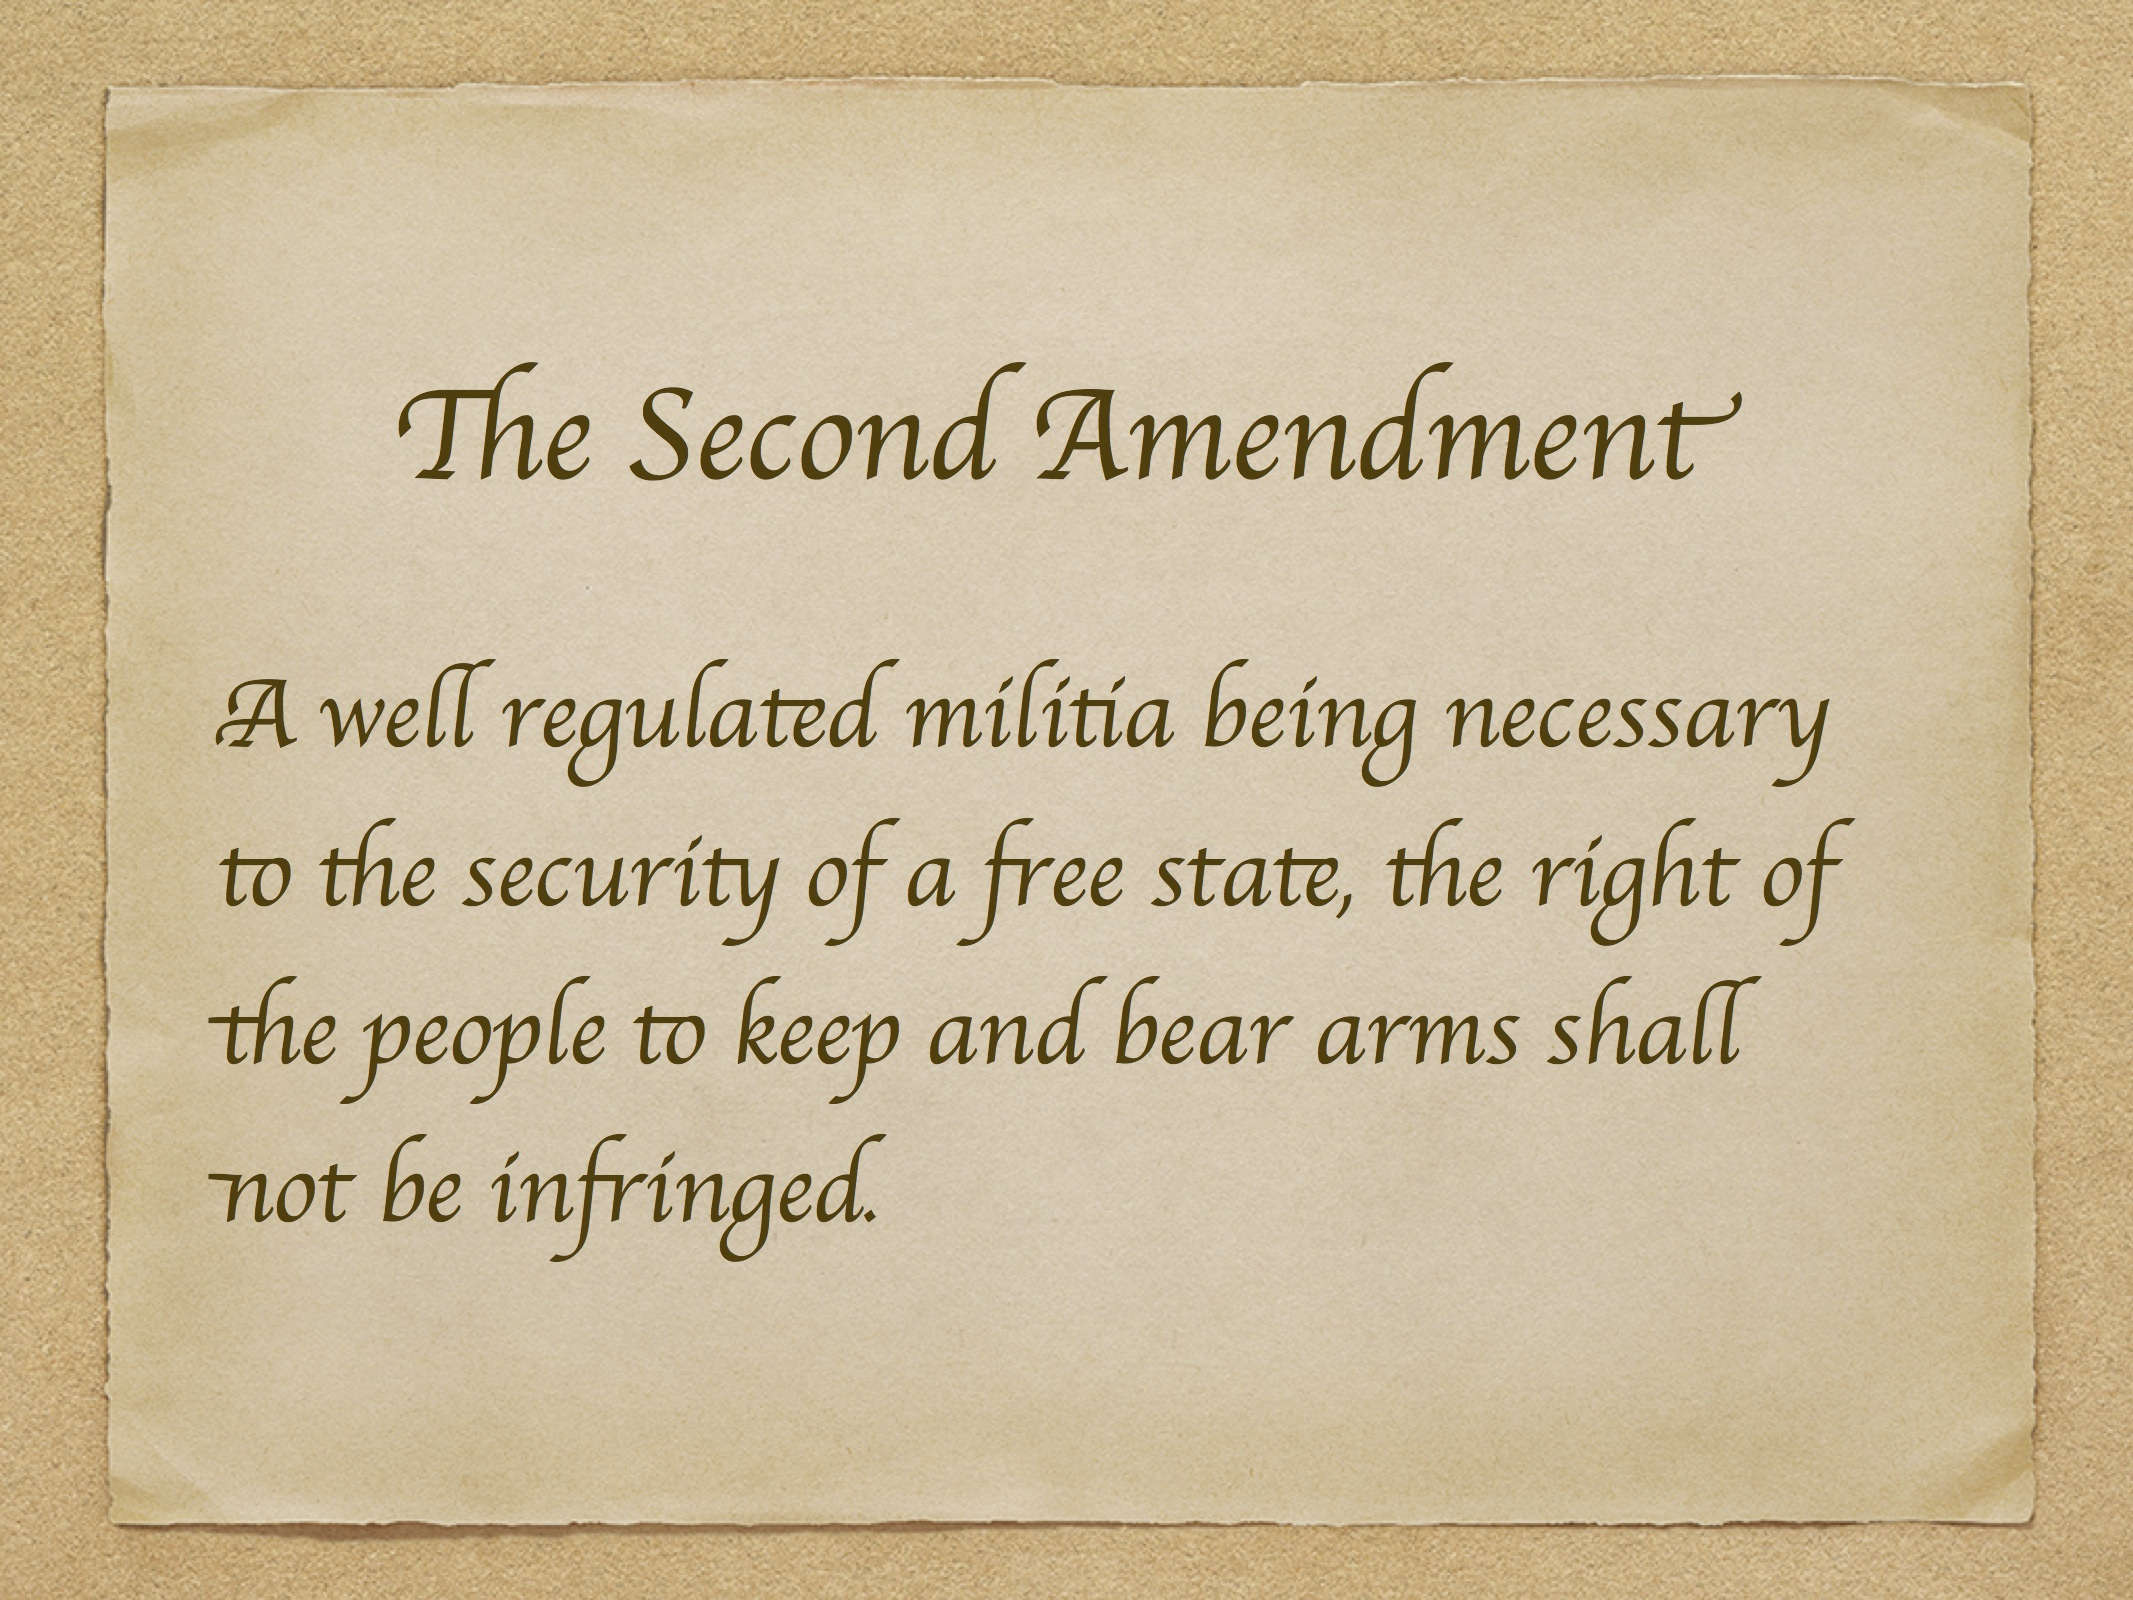 amendment right to bear arms thinglink the right of the people to keep and bear arms shall not be infringed quot in other words in order to keep america protected citizens have a right